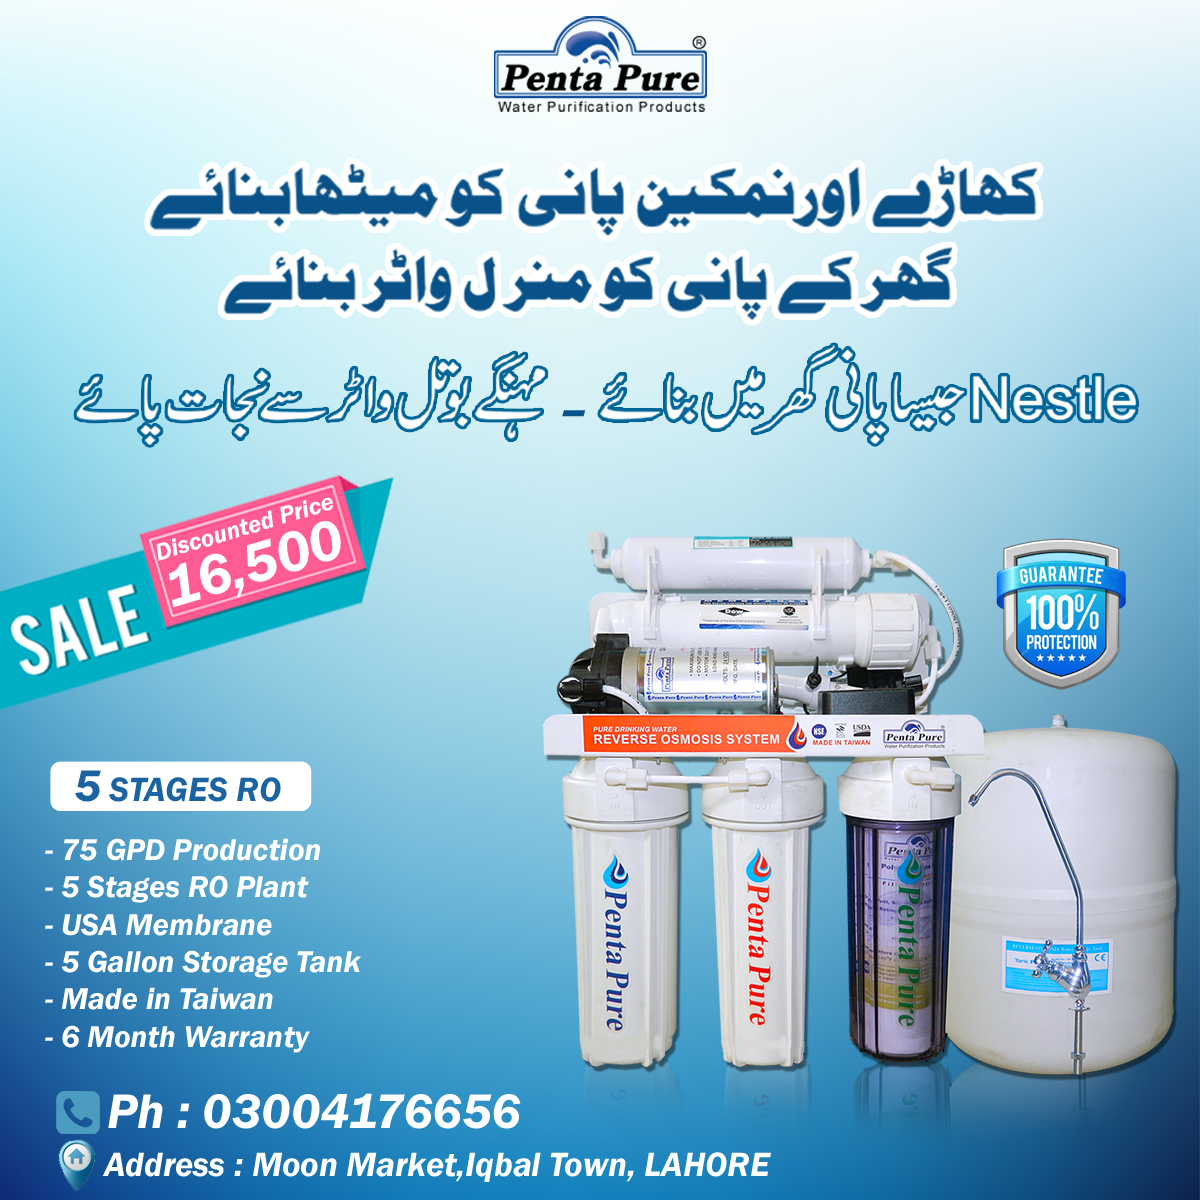 Penta Pure Is The 1 Water Filtration Brand Location In Lahore Pakistan Contact 03004176656 Address Moon Market Best Water Filter Water Filter Water